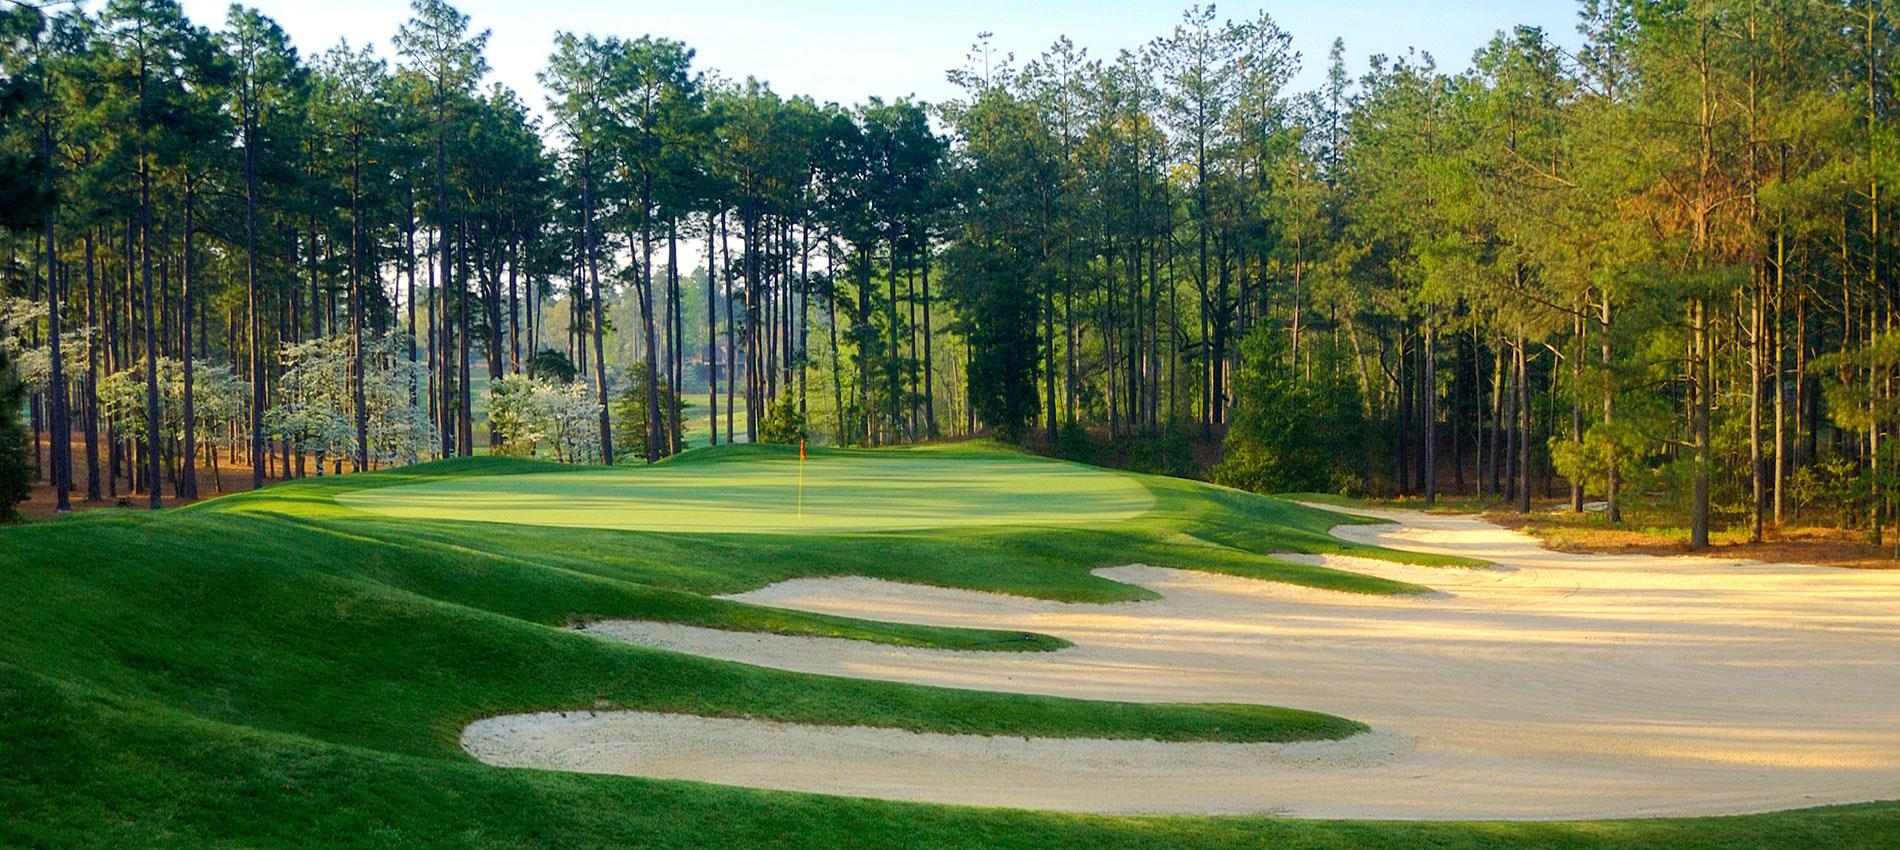 The Holly Inn at Pinehurst 5* - 5 Nights Bed & Breakfast, 3 Rounds